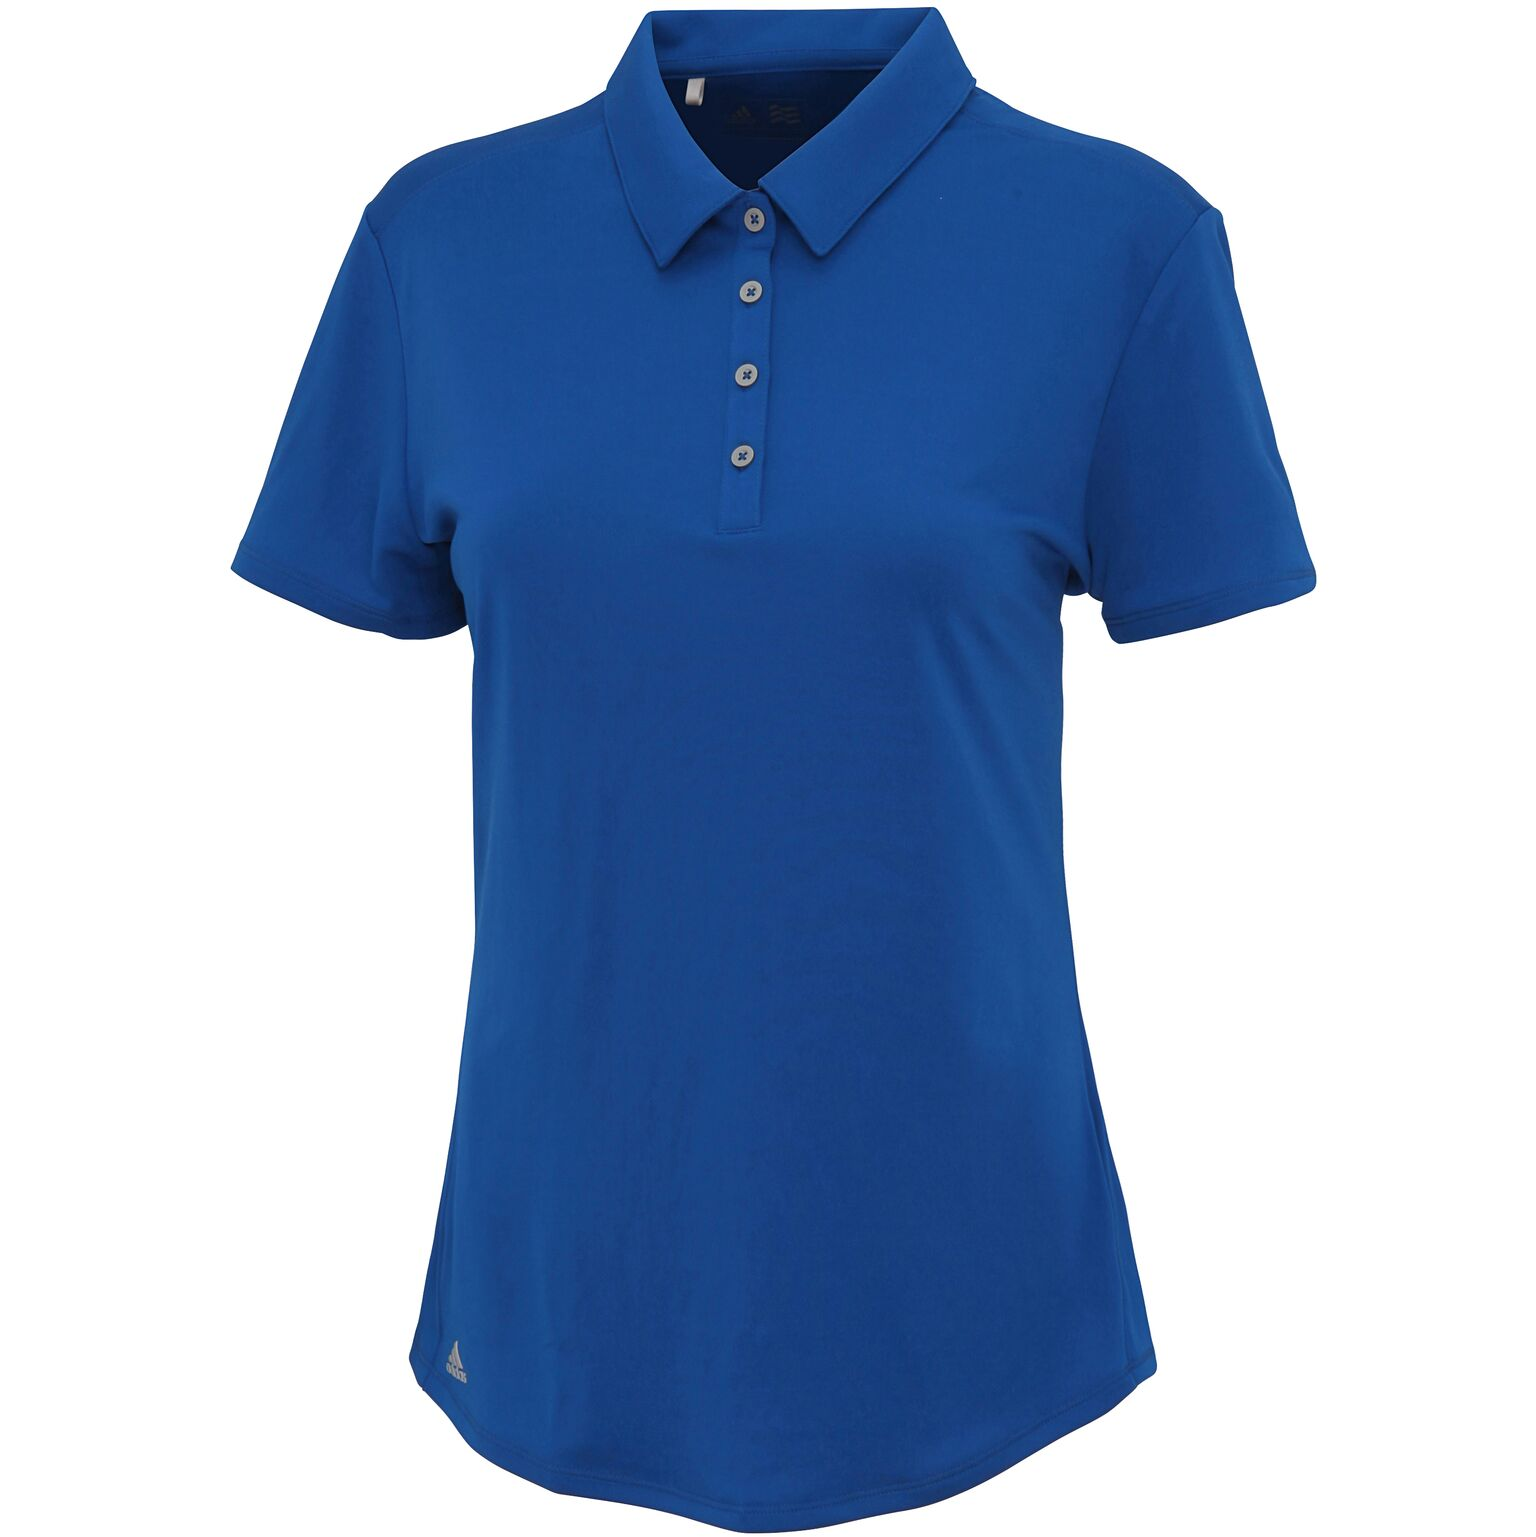 Adidas Women's teamwear polo Blue